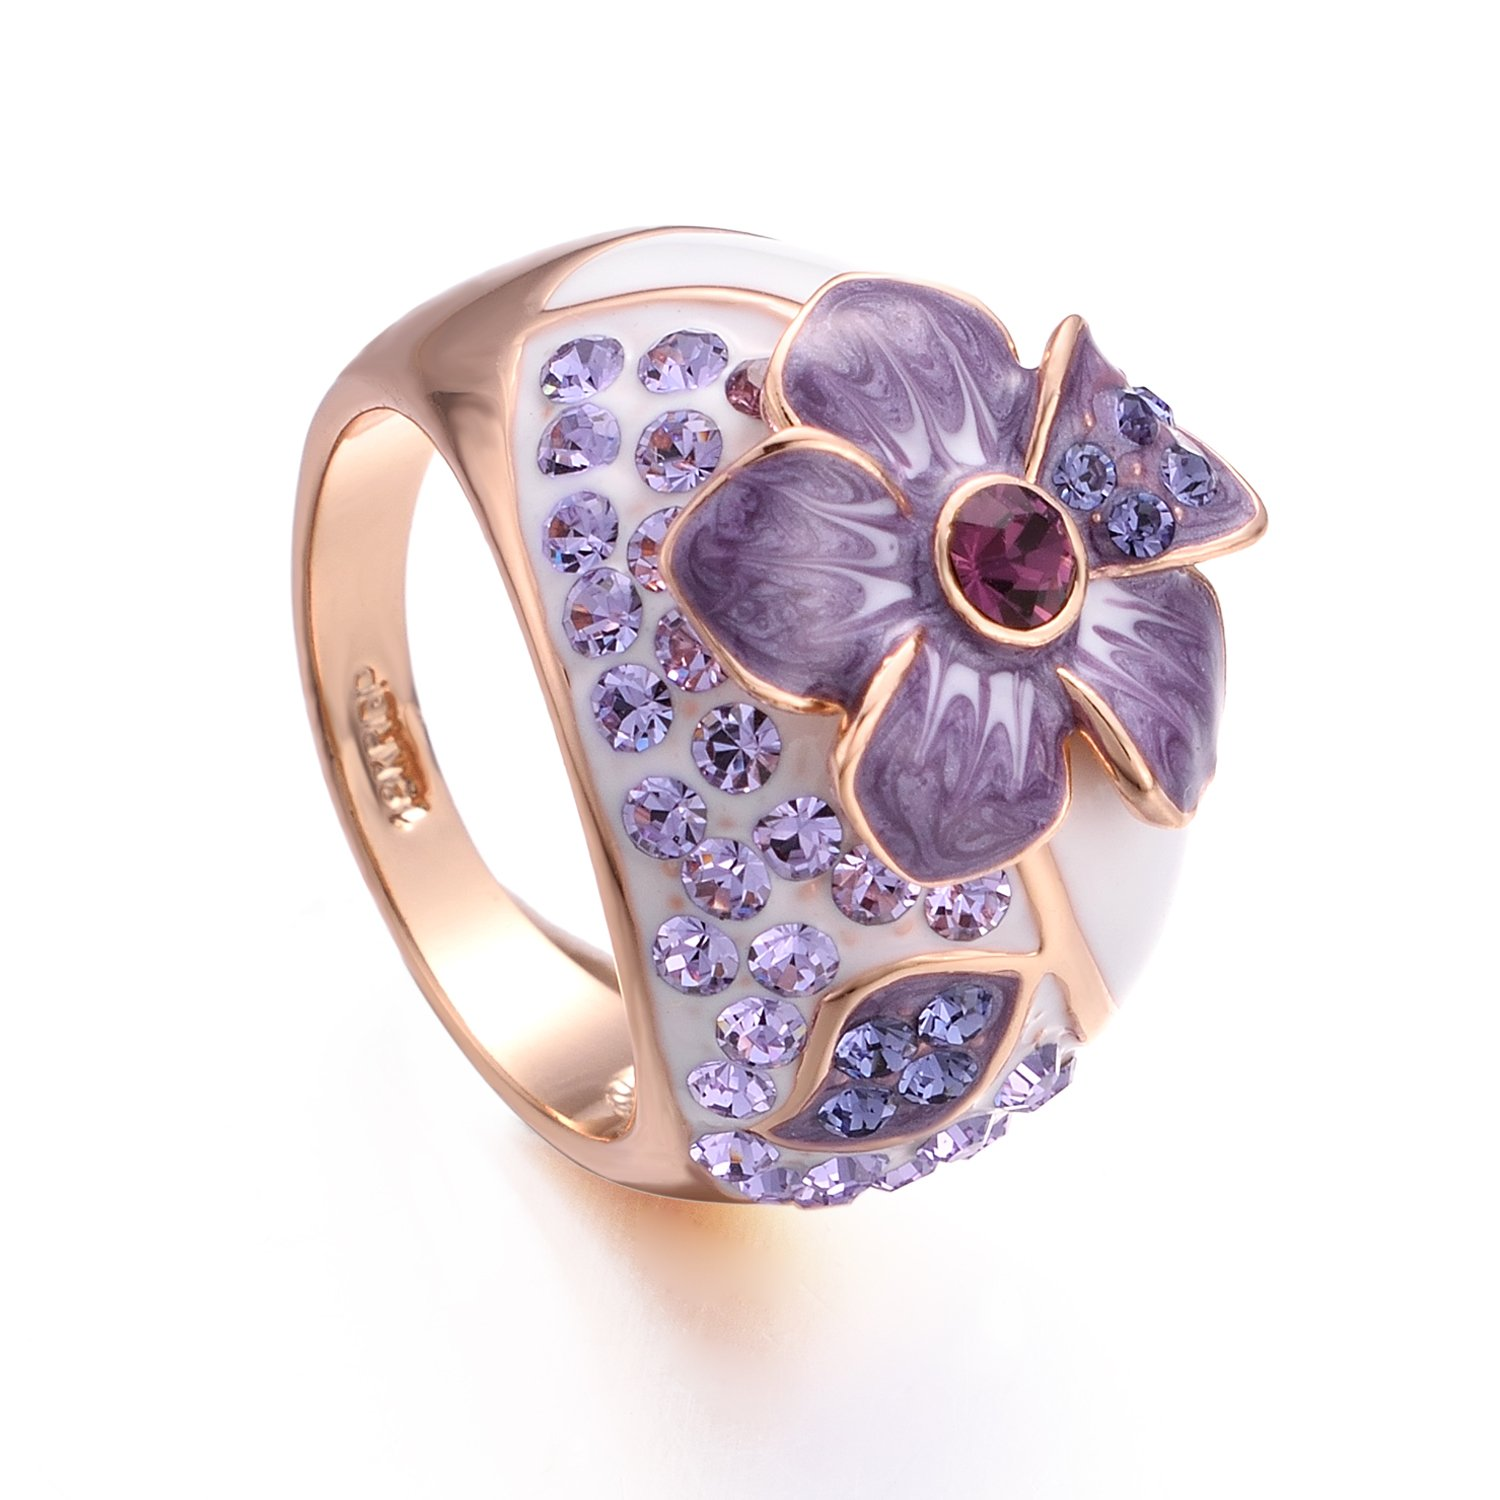 Yoursfs Fashion Women Ring Crystal 18K Rose Gold Plated Engagement Wedding Ring with Purple Flower Jewelry …